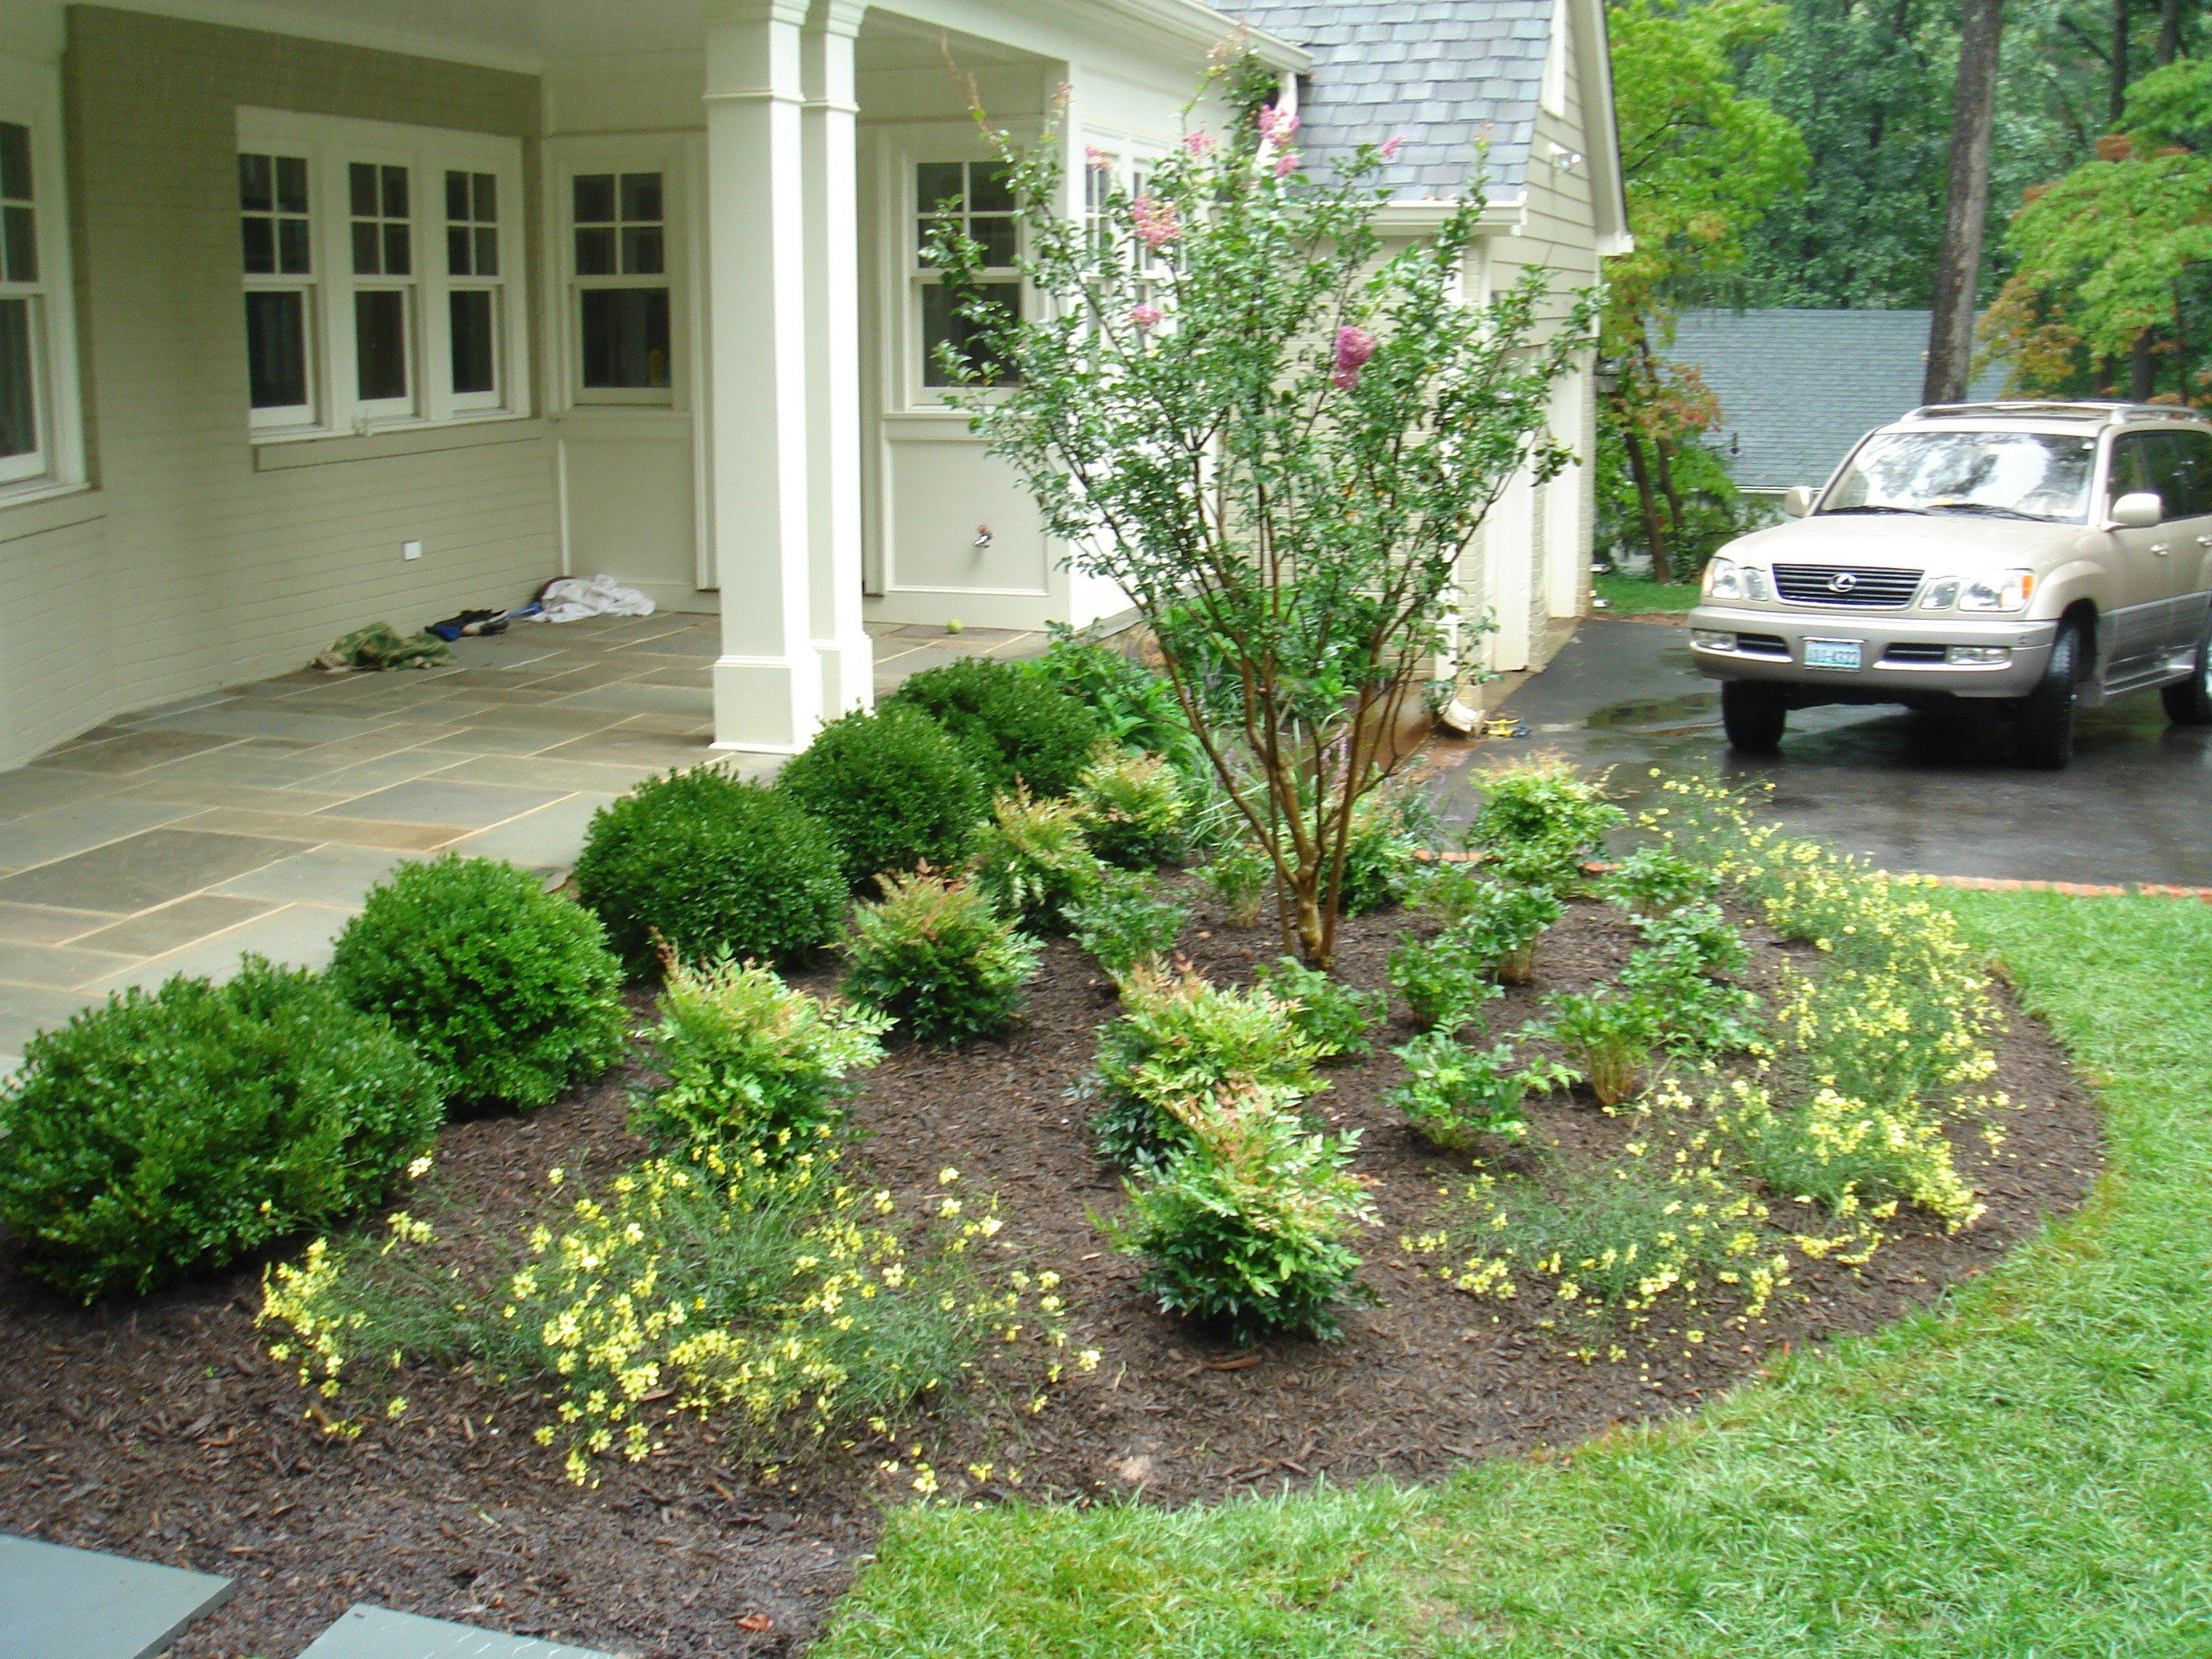 Charmant Landscape Design Photos Front House